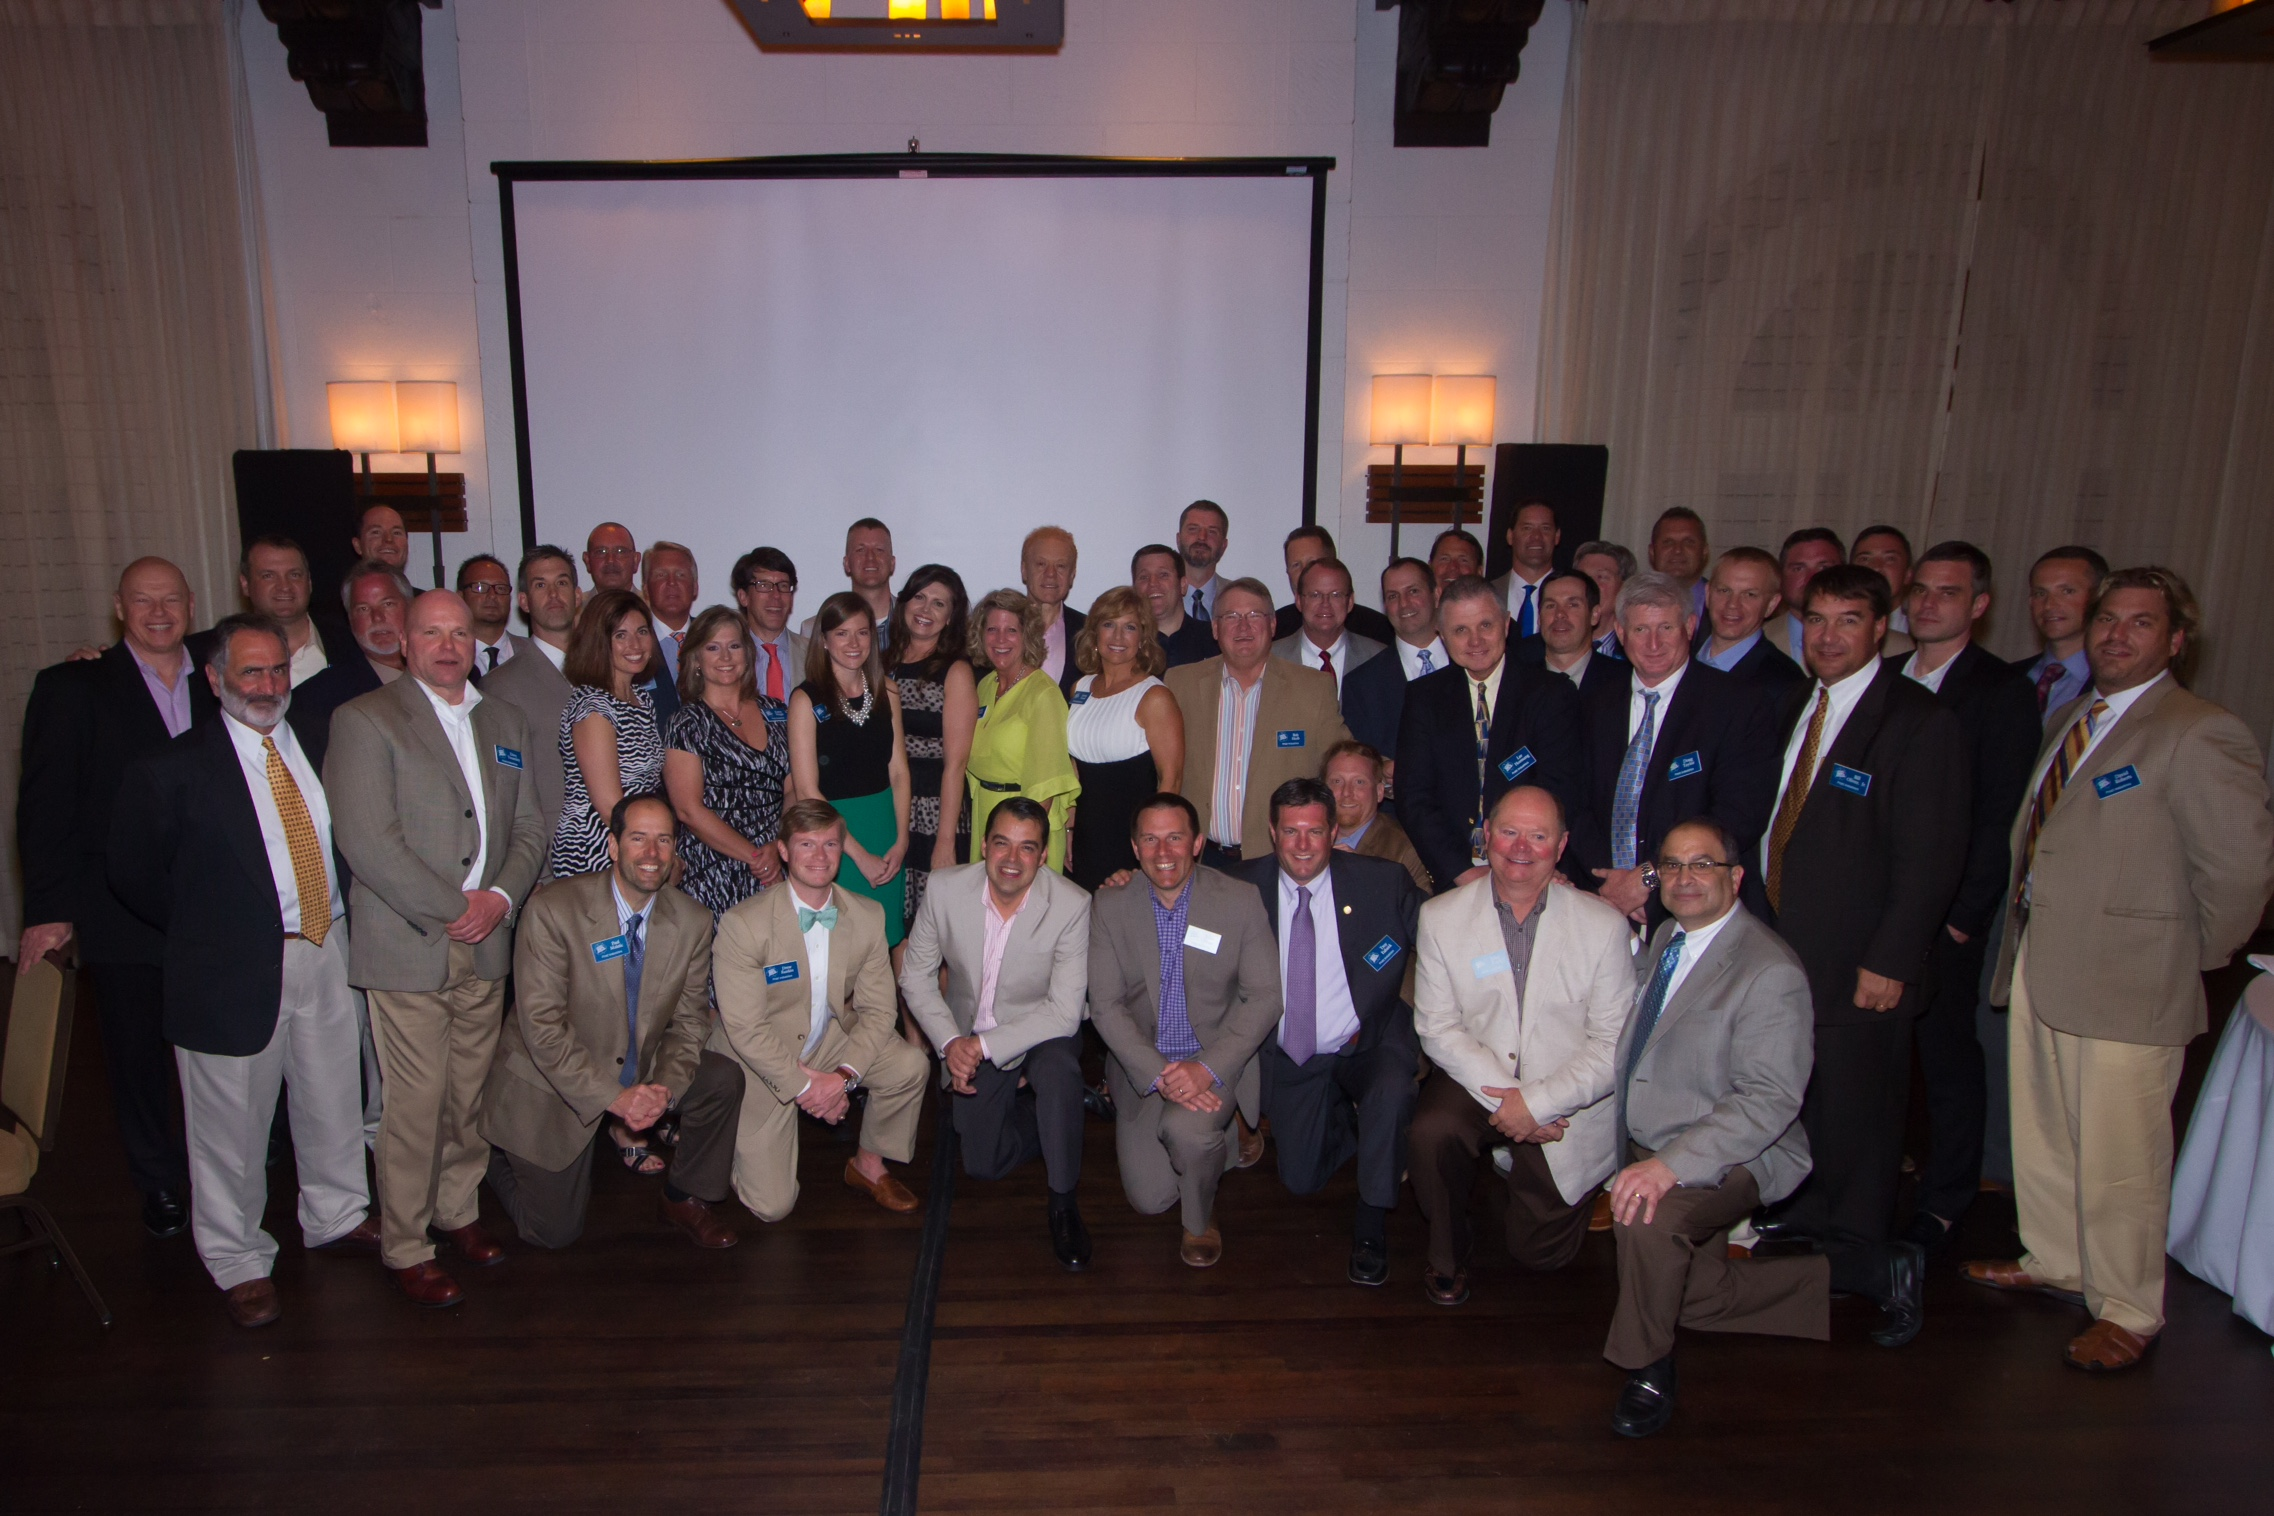 "Pratt executives including chairman Anthony Pratt, Chief Operating Officer David Dennis and Sales & Marketing VP Tom Priest were on hand in Key West, Fla. recently to salute the 40 members of the 2014 Pinnacle Club which honors the top sales reps in our company. ""You are the elite of what is a very talented sales and marketing force,"" Anthony told the winners, ""and I'm proud to join David and Tom in paying tribute to your fantastic results."" Following the awards dinner on the Thursday night, Pinnacle members and their partners spent a long weekend last month enjoying the sun and surf of the Keys."